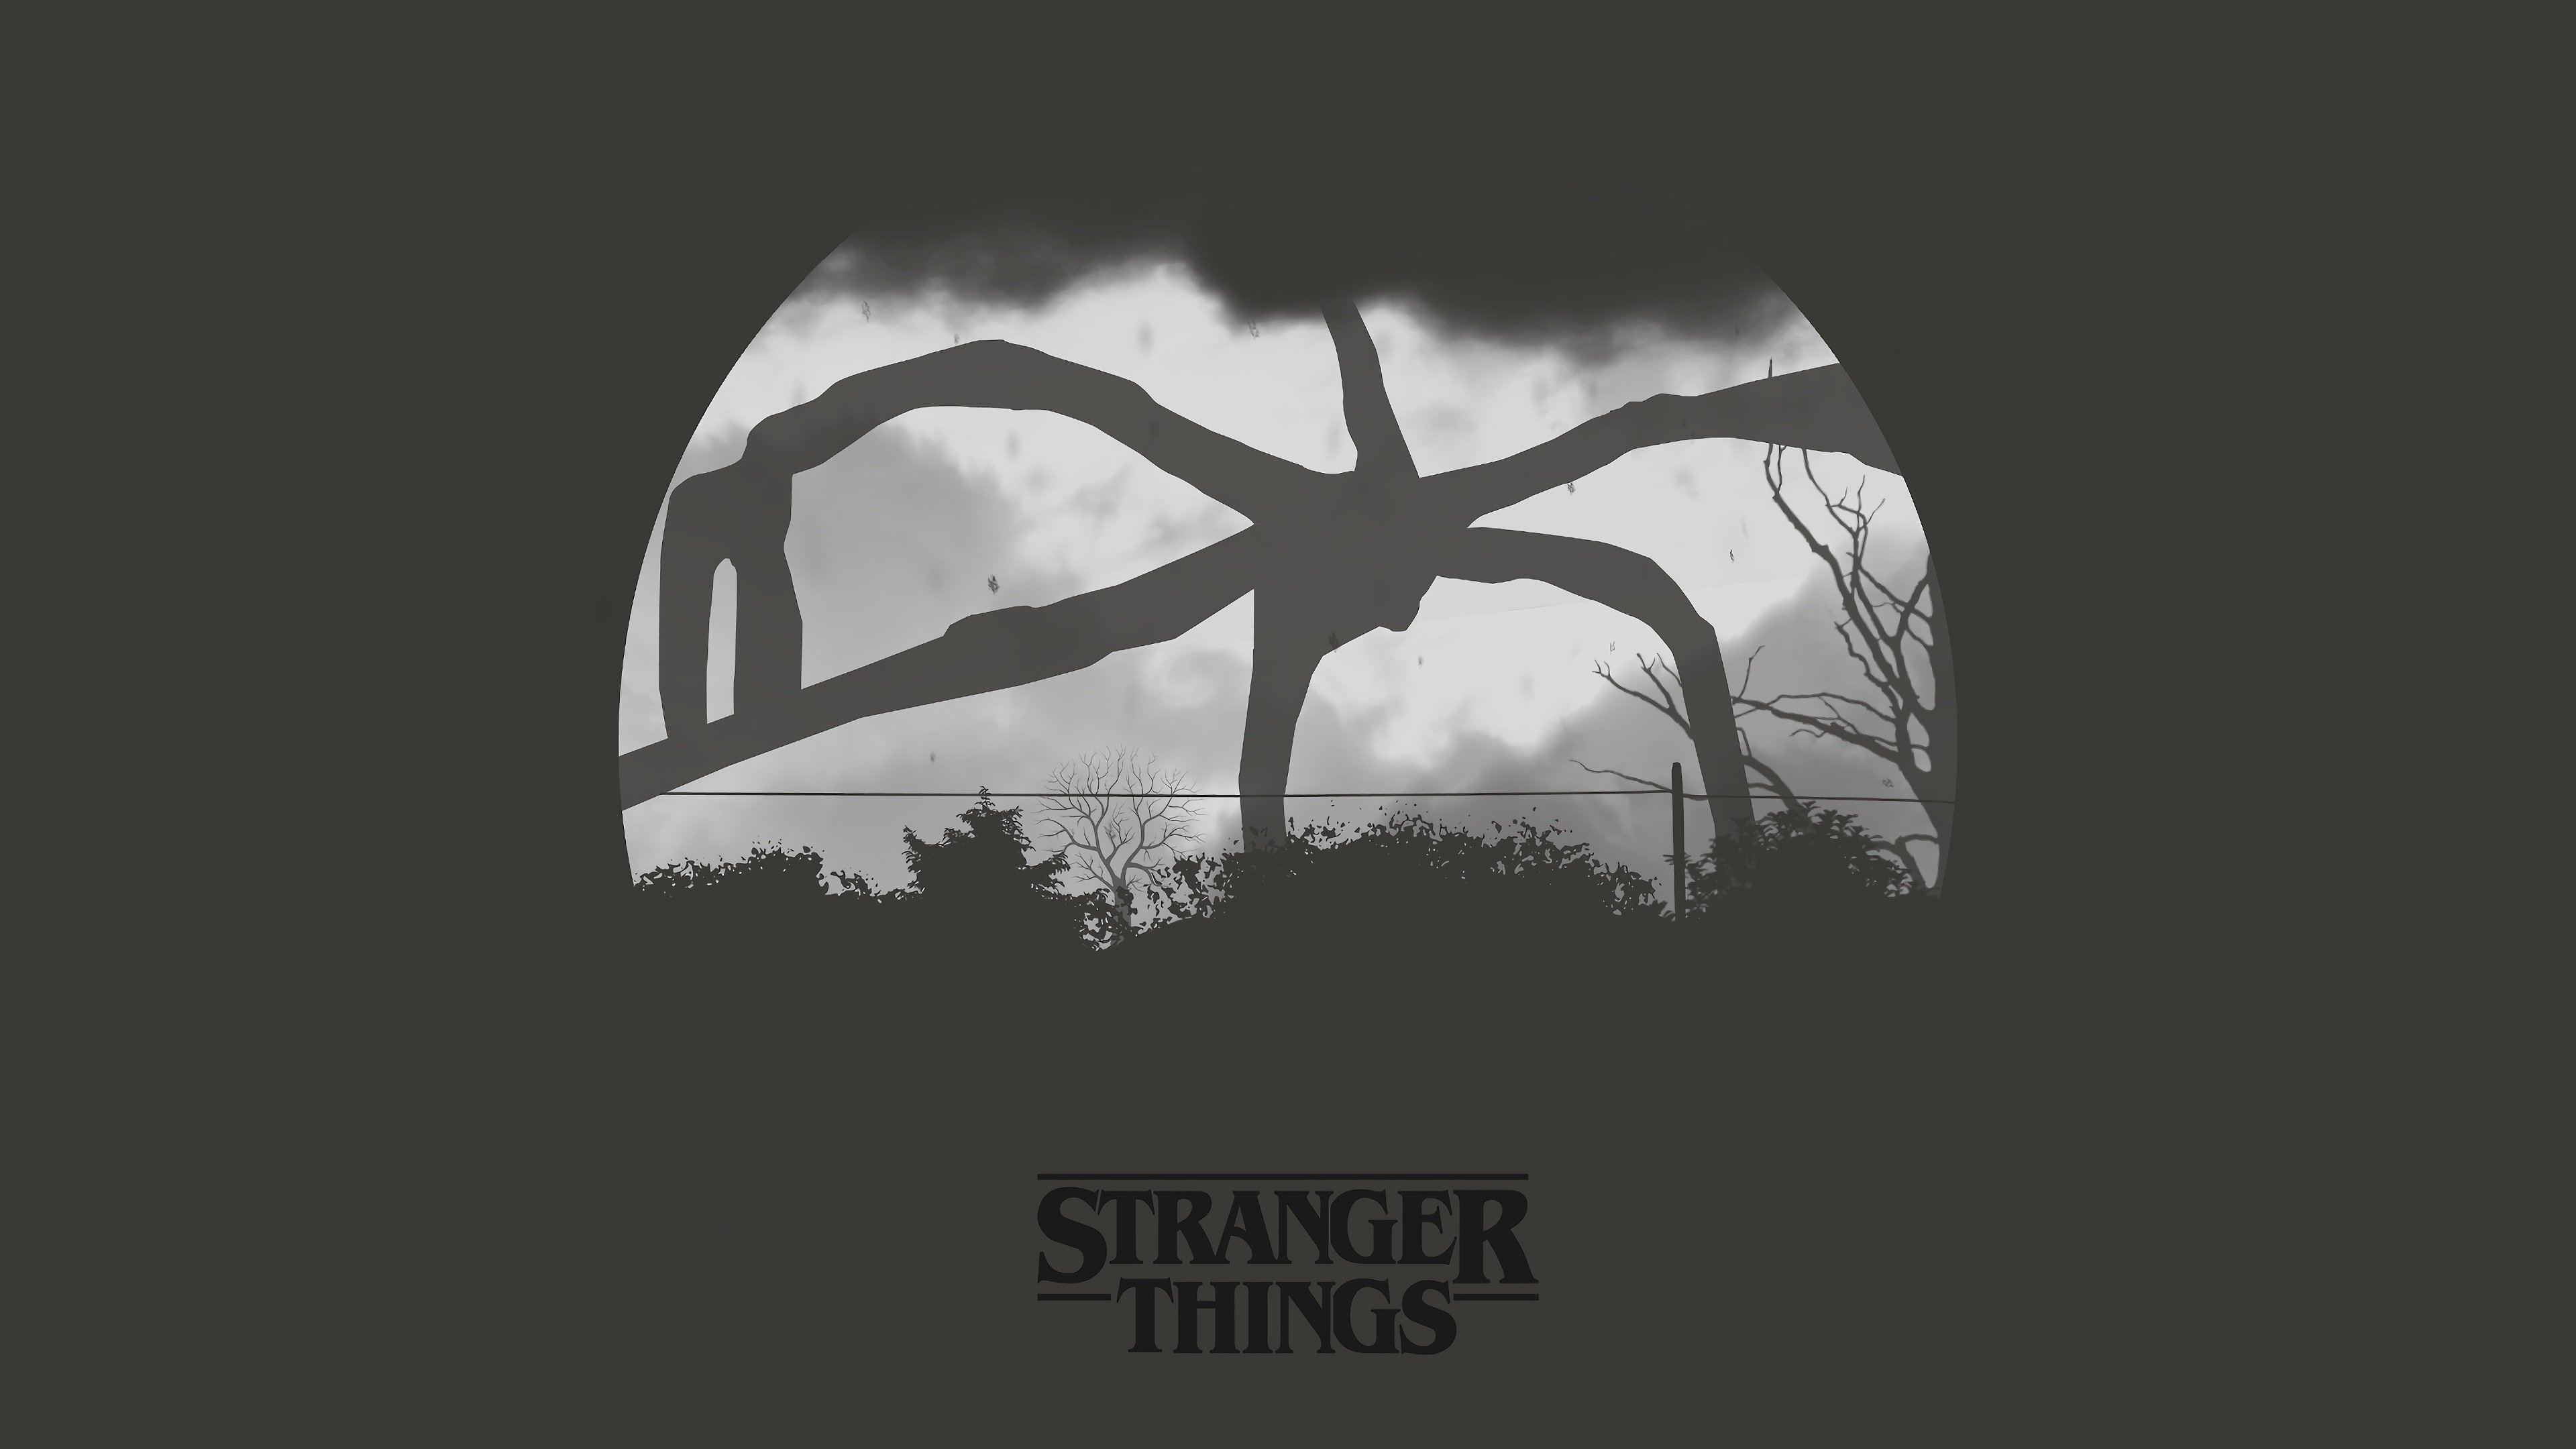 Stranger Things [TV Series] Wallpaper HD 3840x2160